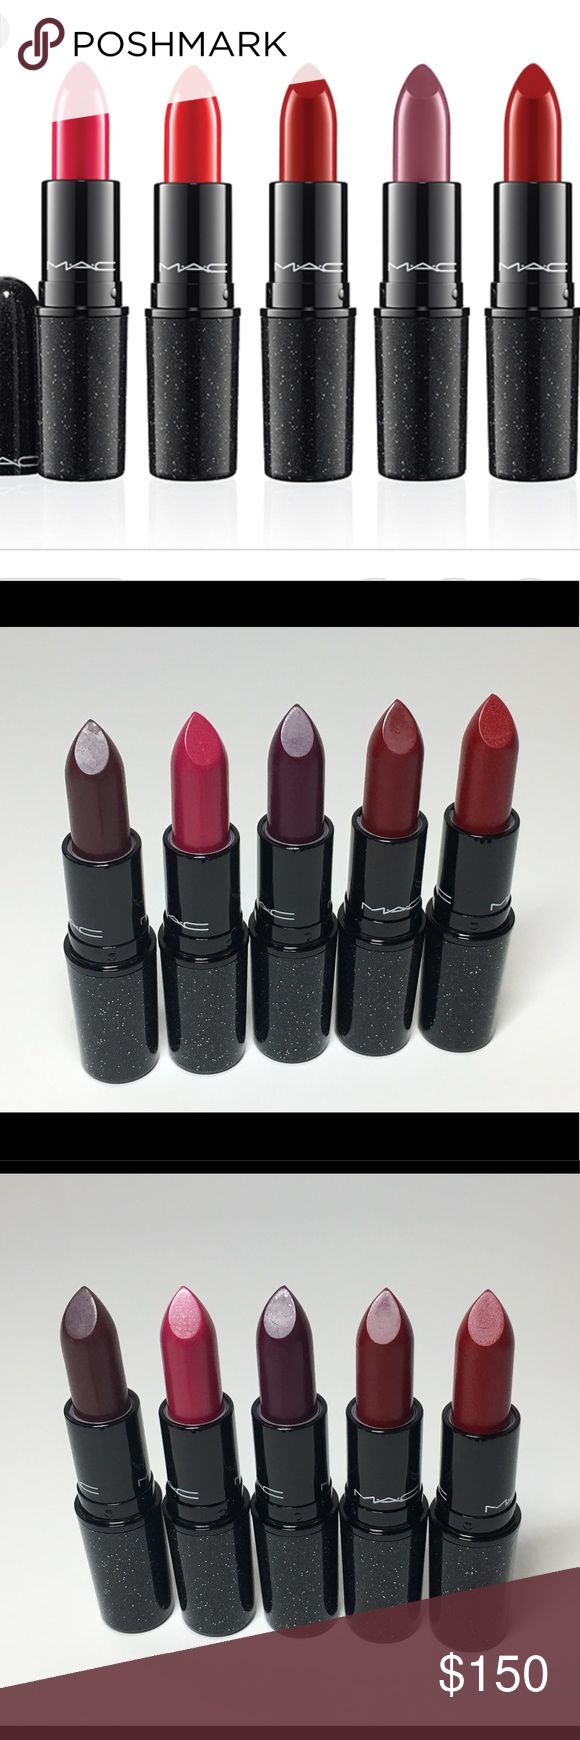 NIB Mac Heirloom Mix Lipsticks x5 100% Auth A64 NIB Mac Cosmetics Heirloom Mix Lipstick bundle x5. Batch code: A64.  Heirloom Mix Holiday 2014 Collection. Limited Edition. 100% Authentic.   Tribalist, No Faux Pas, Rebel, Salon Rouge & Sparks of Romance. Please see pictures as this is actual item that you will receive. Please feel free to contact me with any questions and I will get back to you as soon as possible. Thank you! MAC Cosmetics Makeup Lipstick